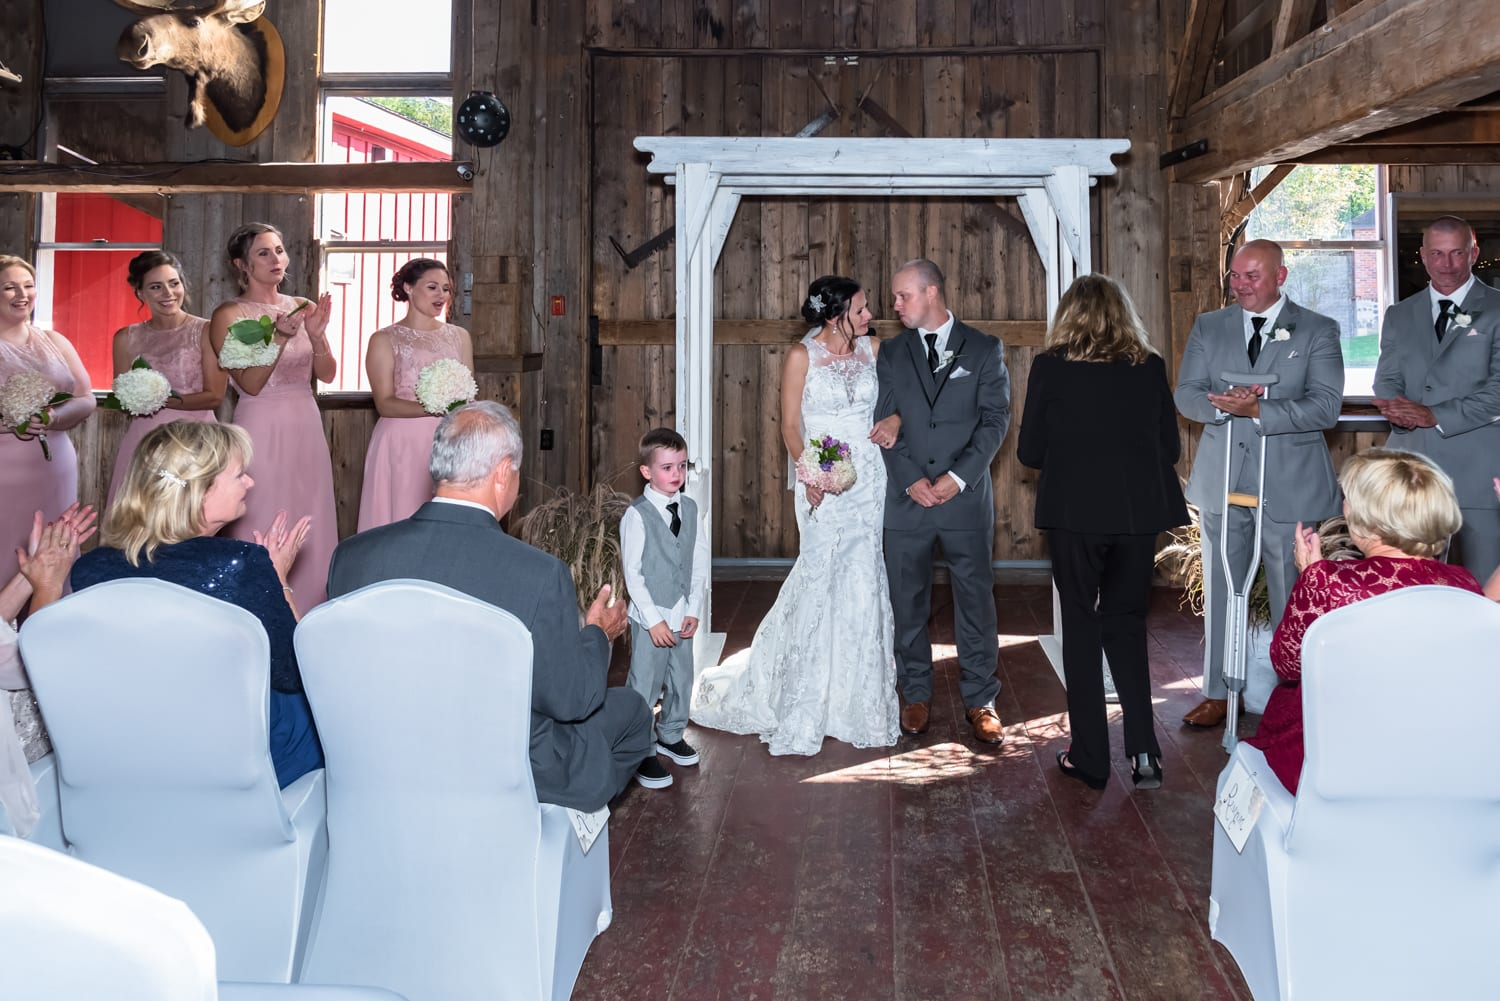 The wedding announcement of husband and wife during the wedding ceremony at Old Orchard Inn.